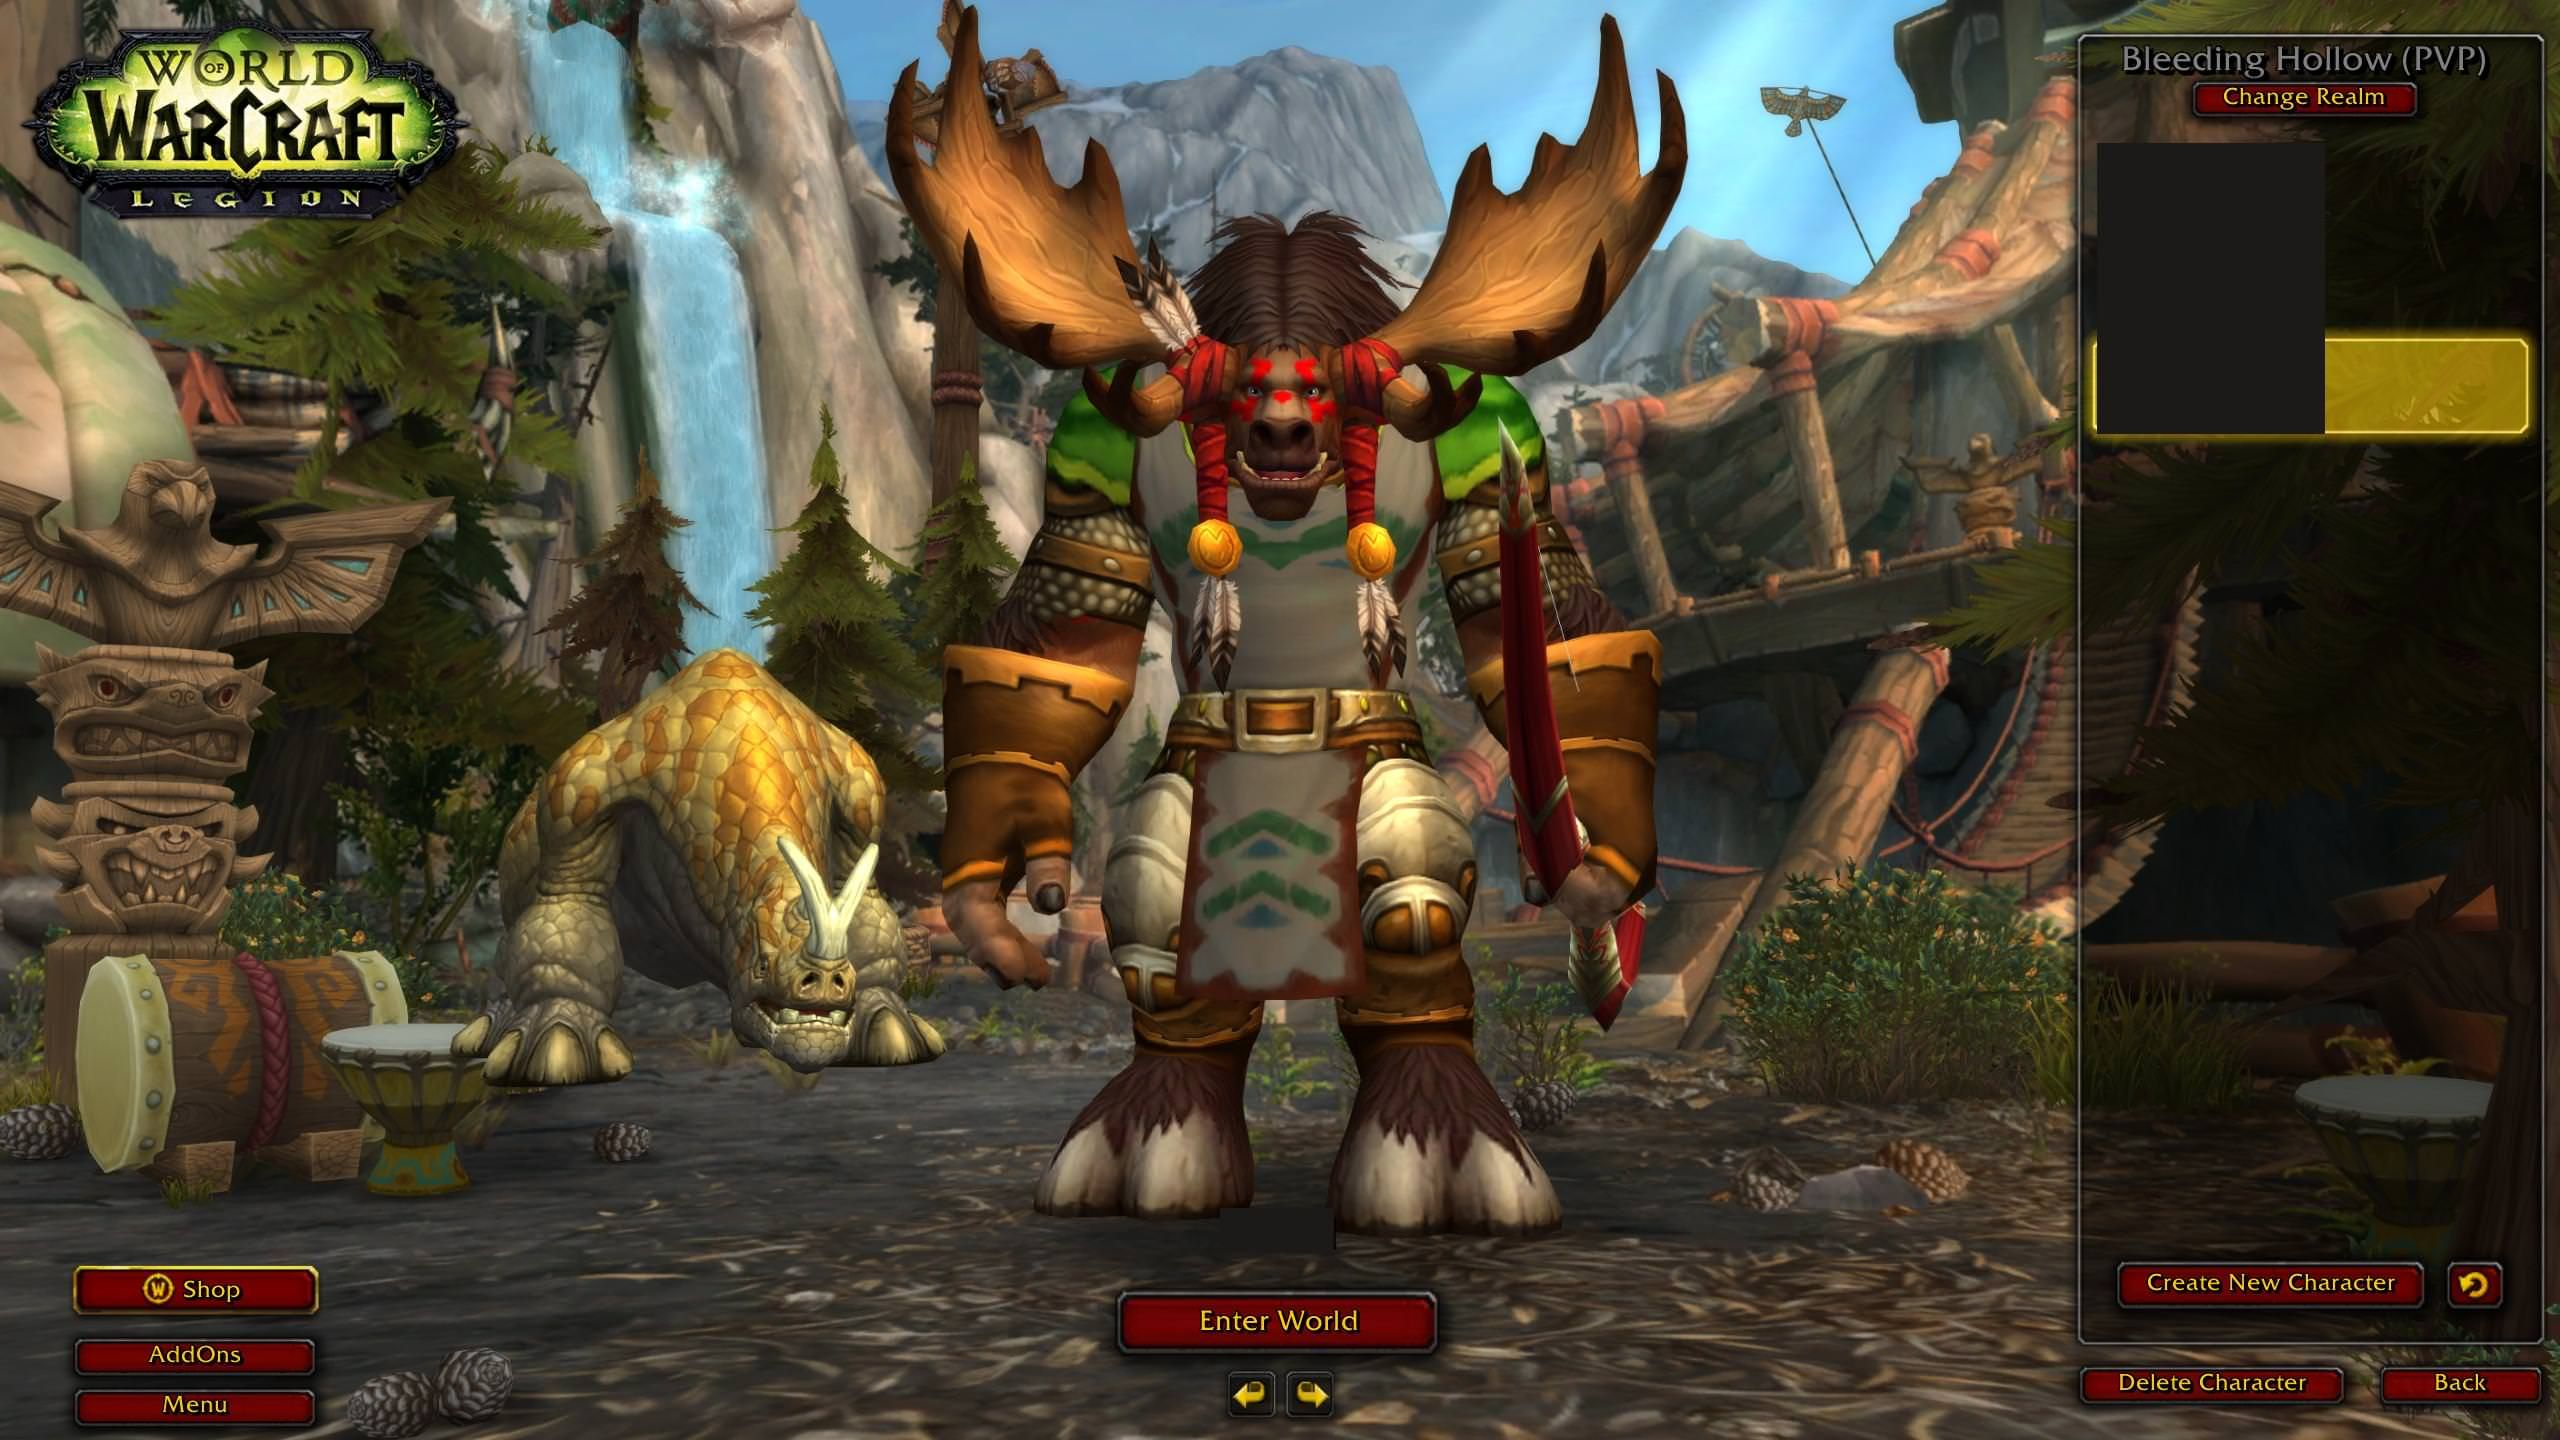 fishing chair wowhead rentals in md hunter pets sit a bit awkwardly on the highmountain tauren login screen worldofwarcraft blizzard hearthstone wow warcraft blizzardcs gaming